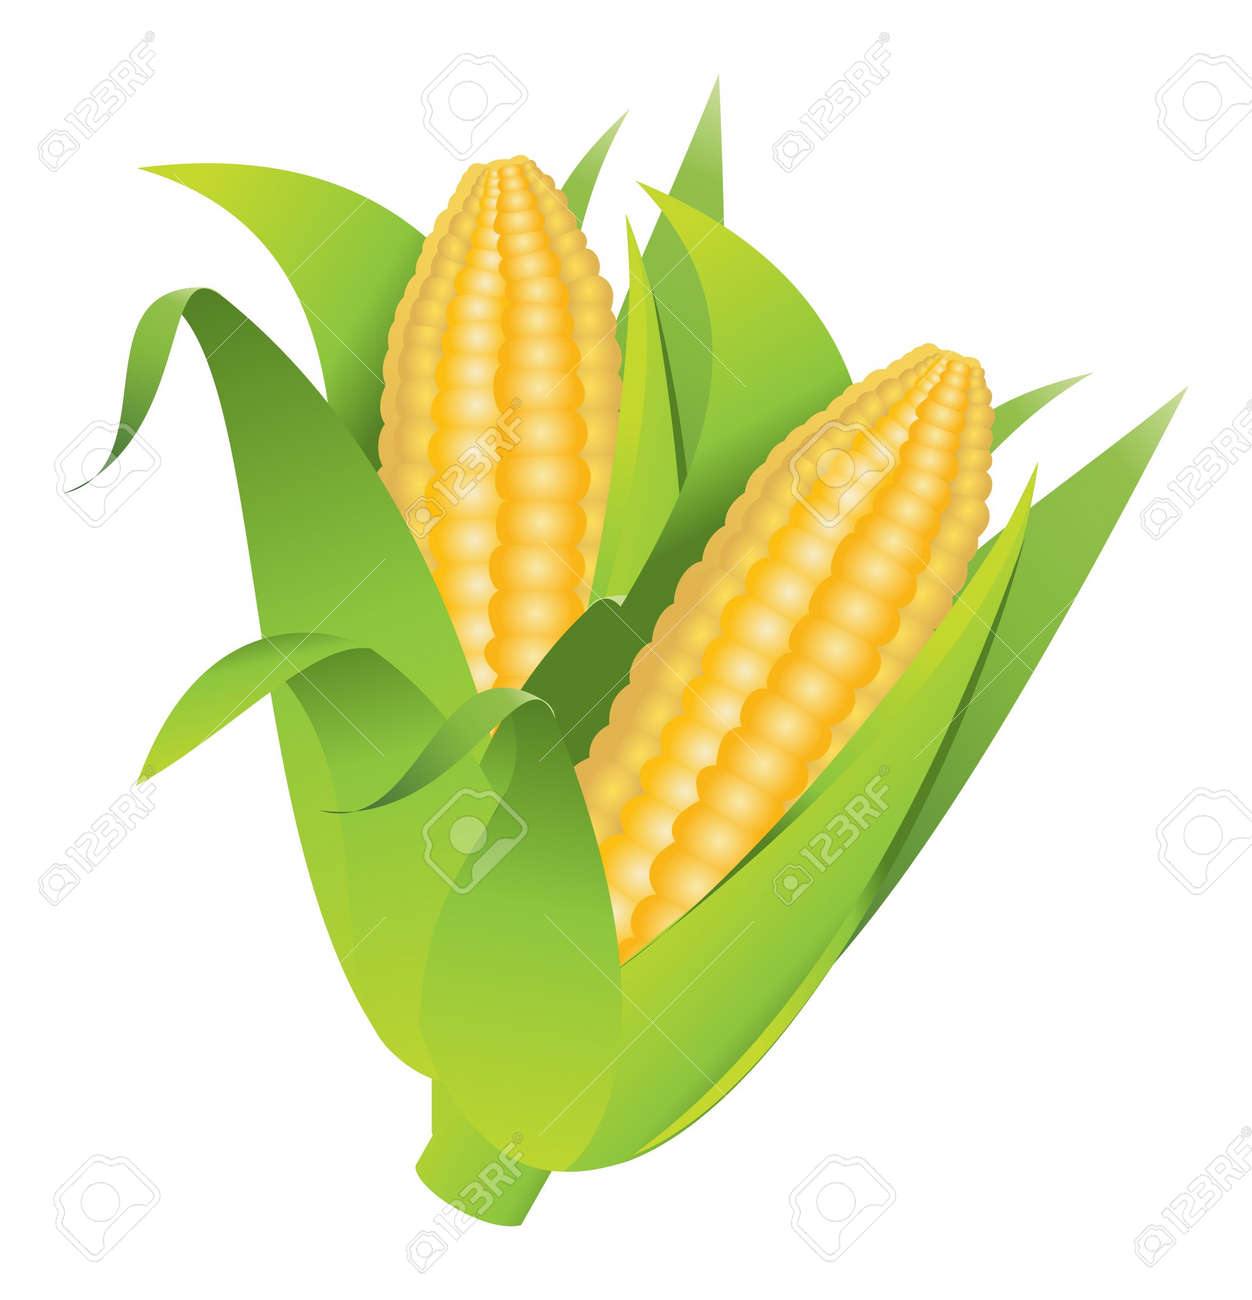 7 050 sweet corn stock illustrations cliparts and royalty free rh 123rf com corn on the cob clip art black and white